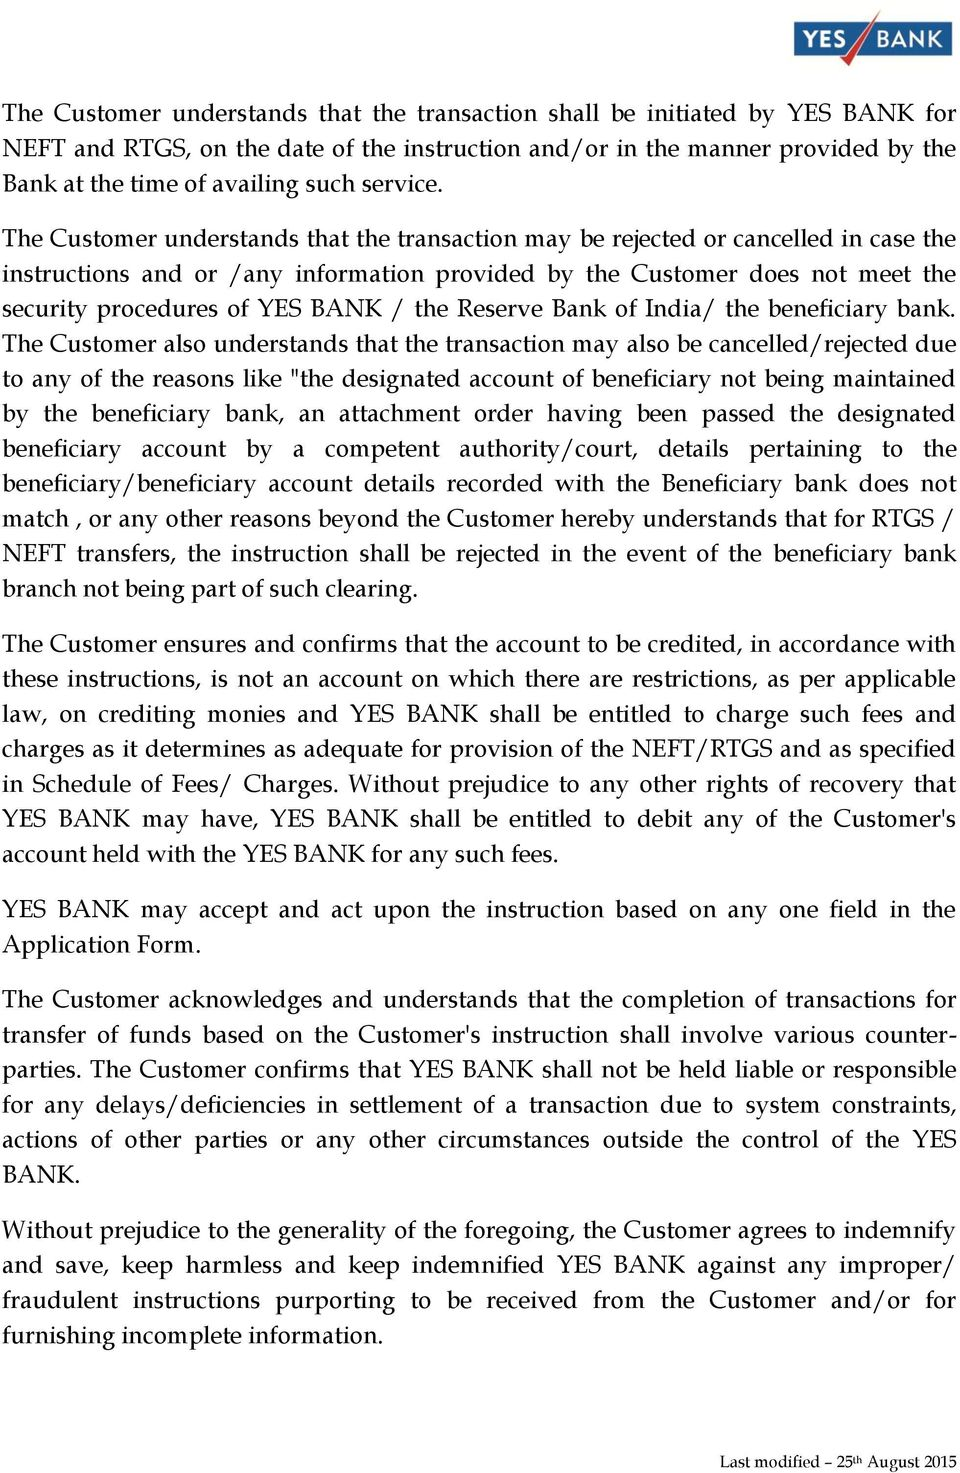 The Customer understands that the transaction may be rejected or cancelled in case the instructions and or /any information provided by the Customer does not meet the security procedures of YES BANK